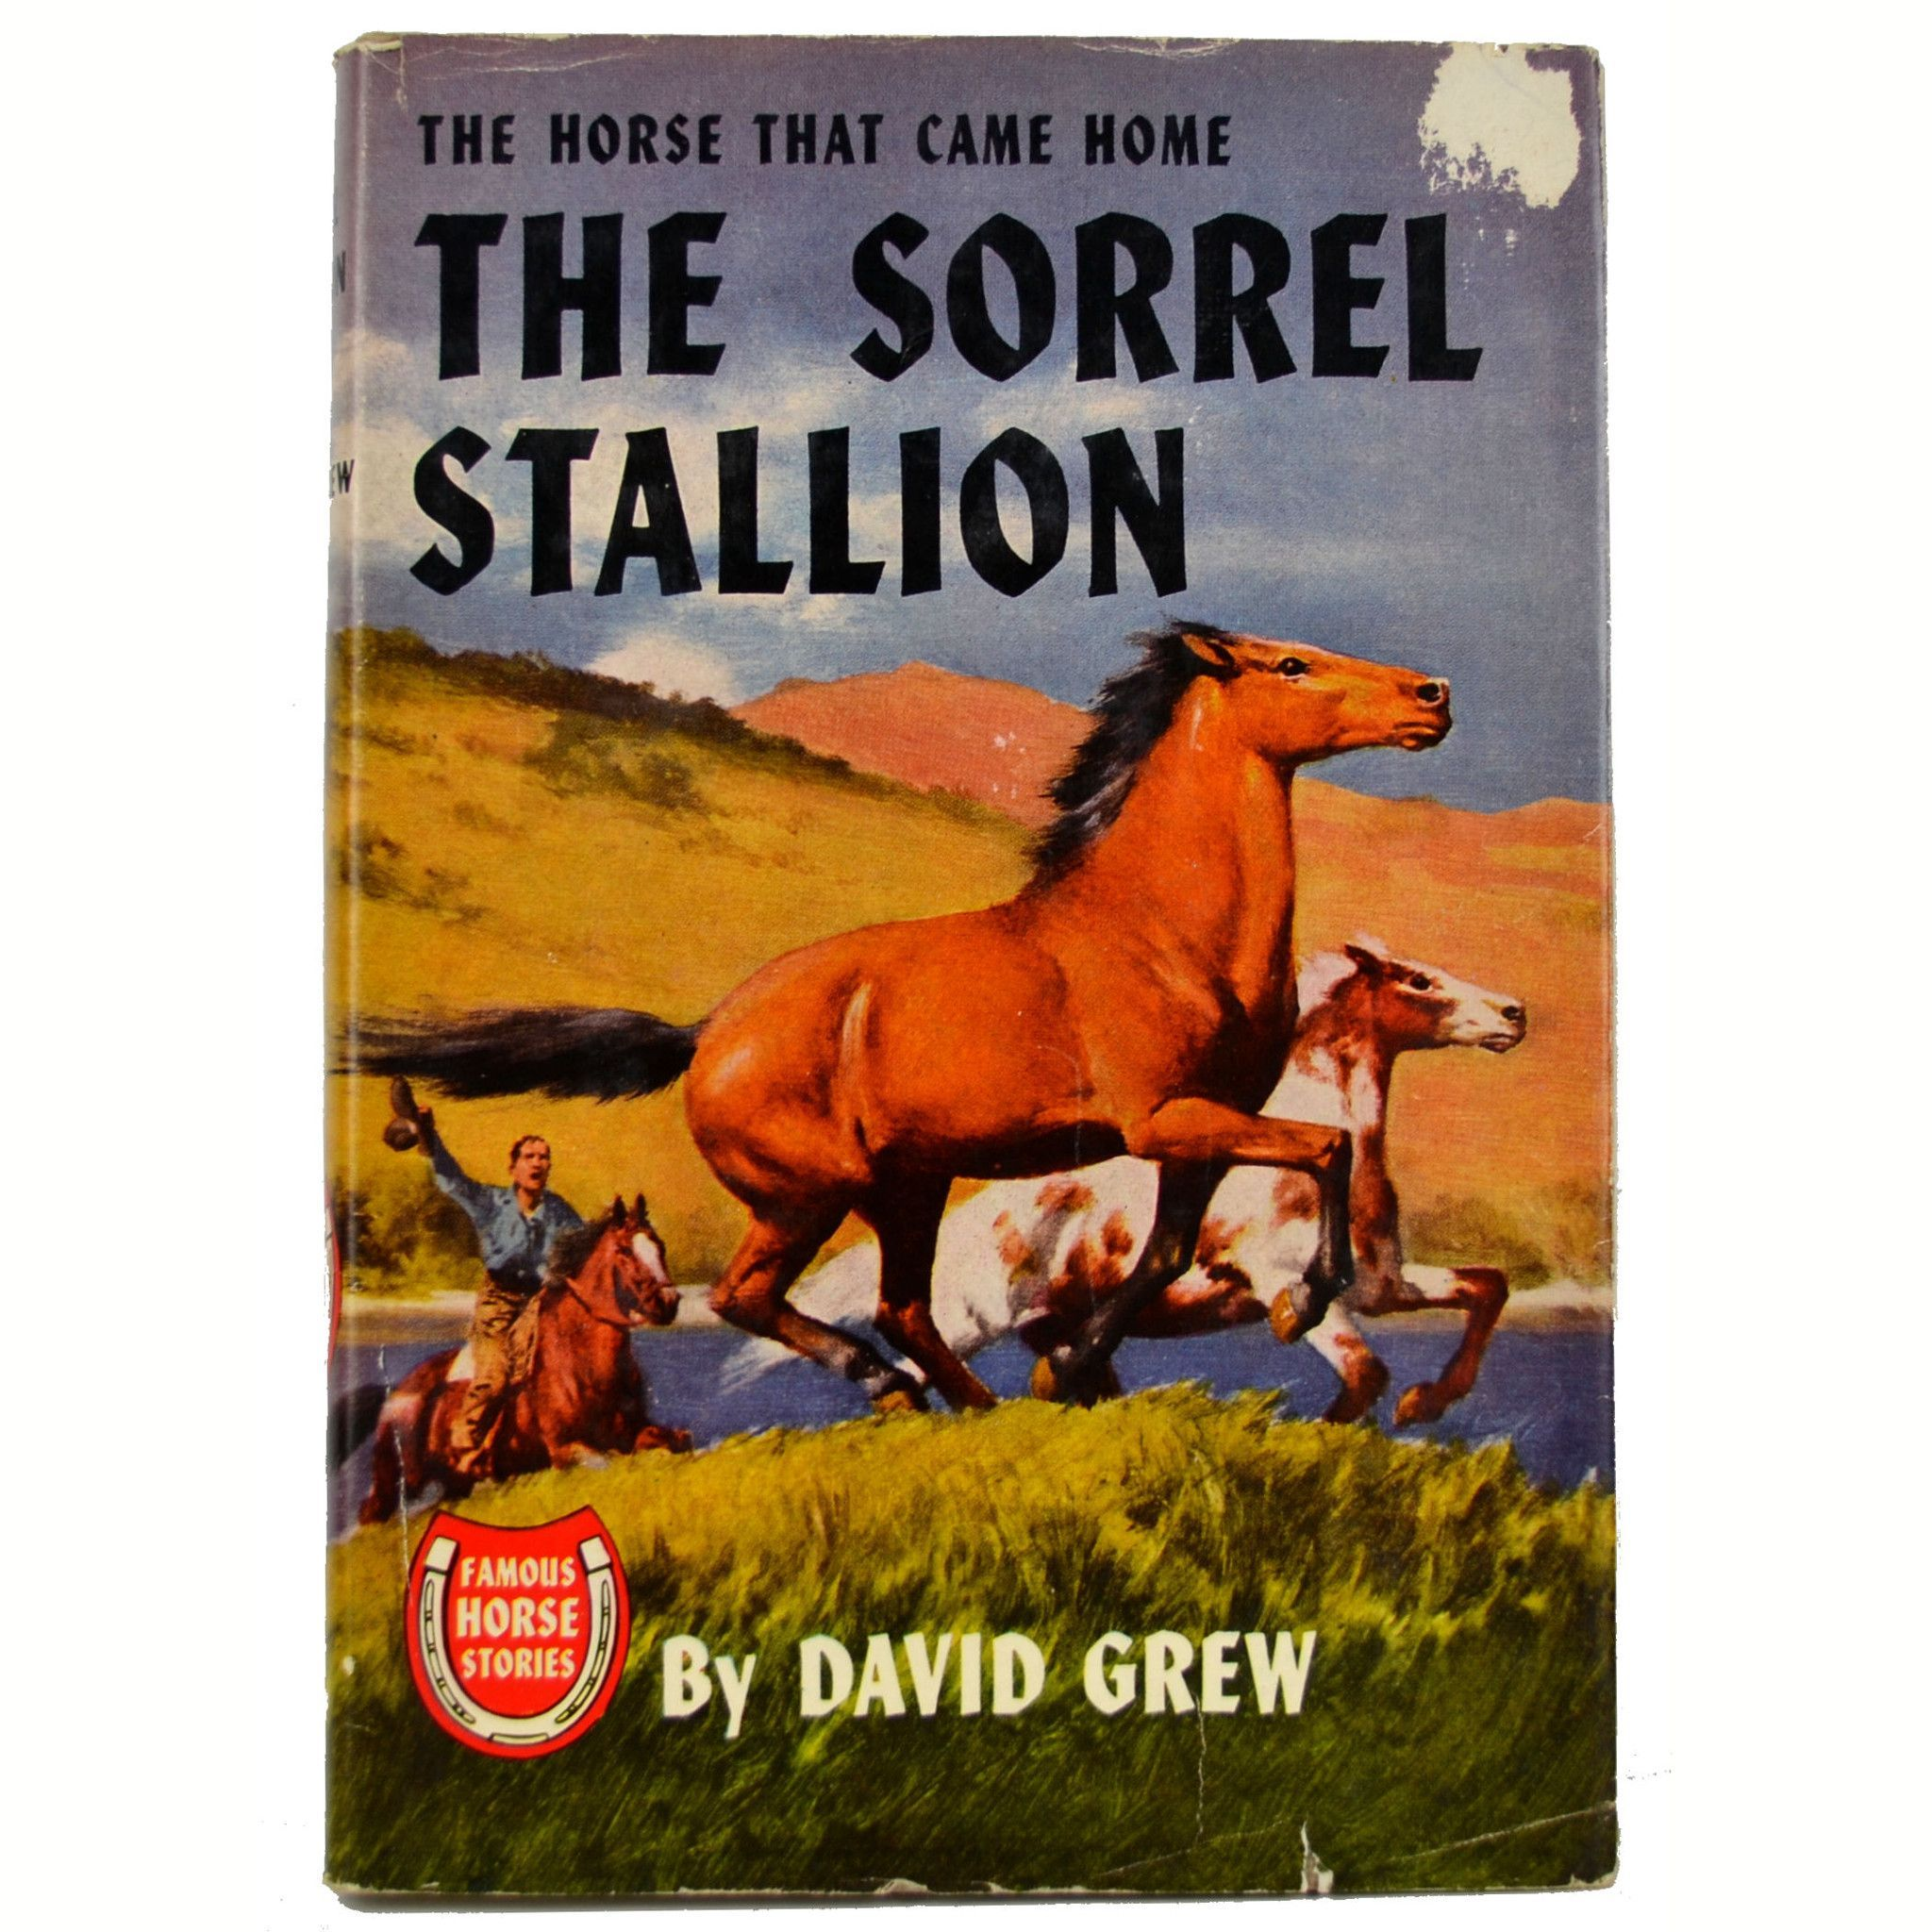 The Sorrel Stallion The Horse That Came Home 1951 David Grew Hardcover Book with Dust Jacket